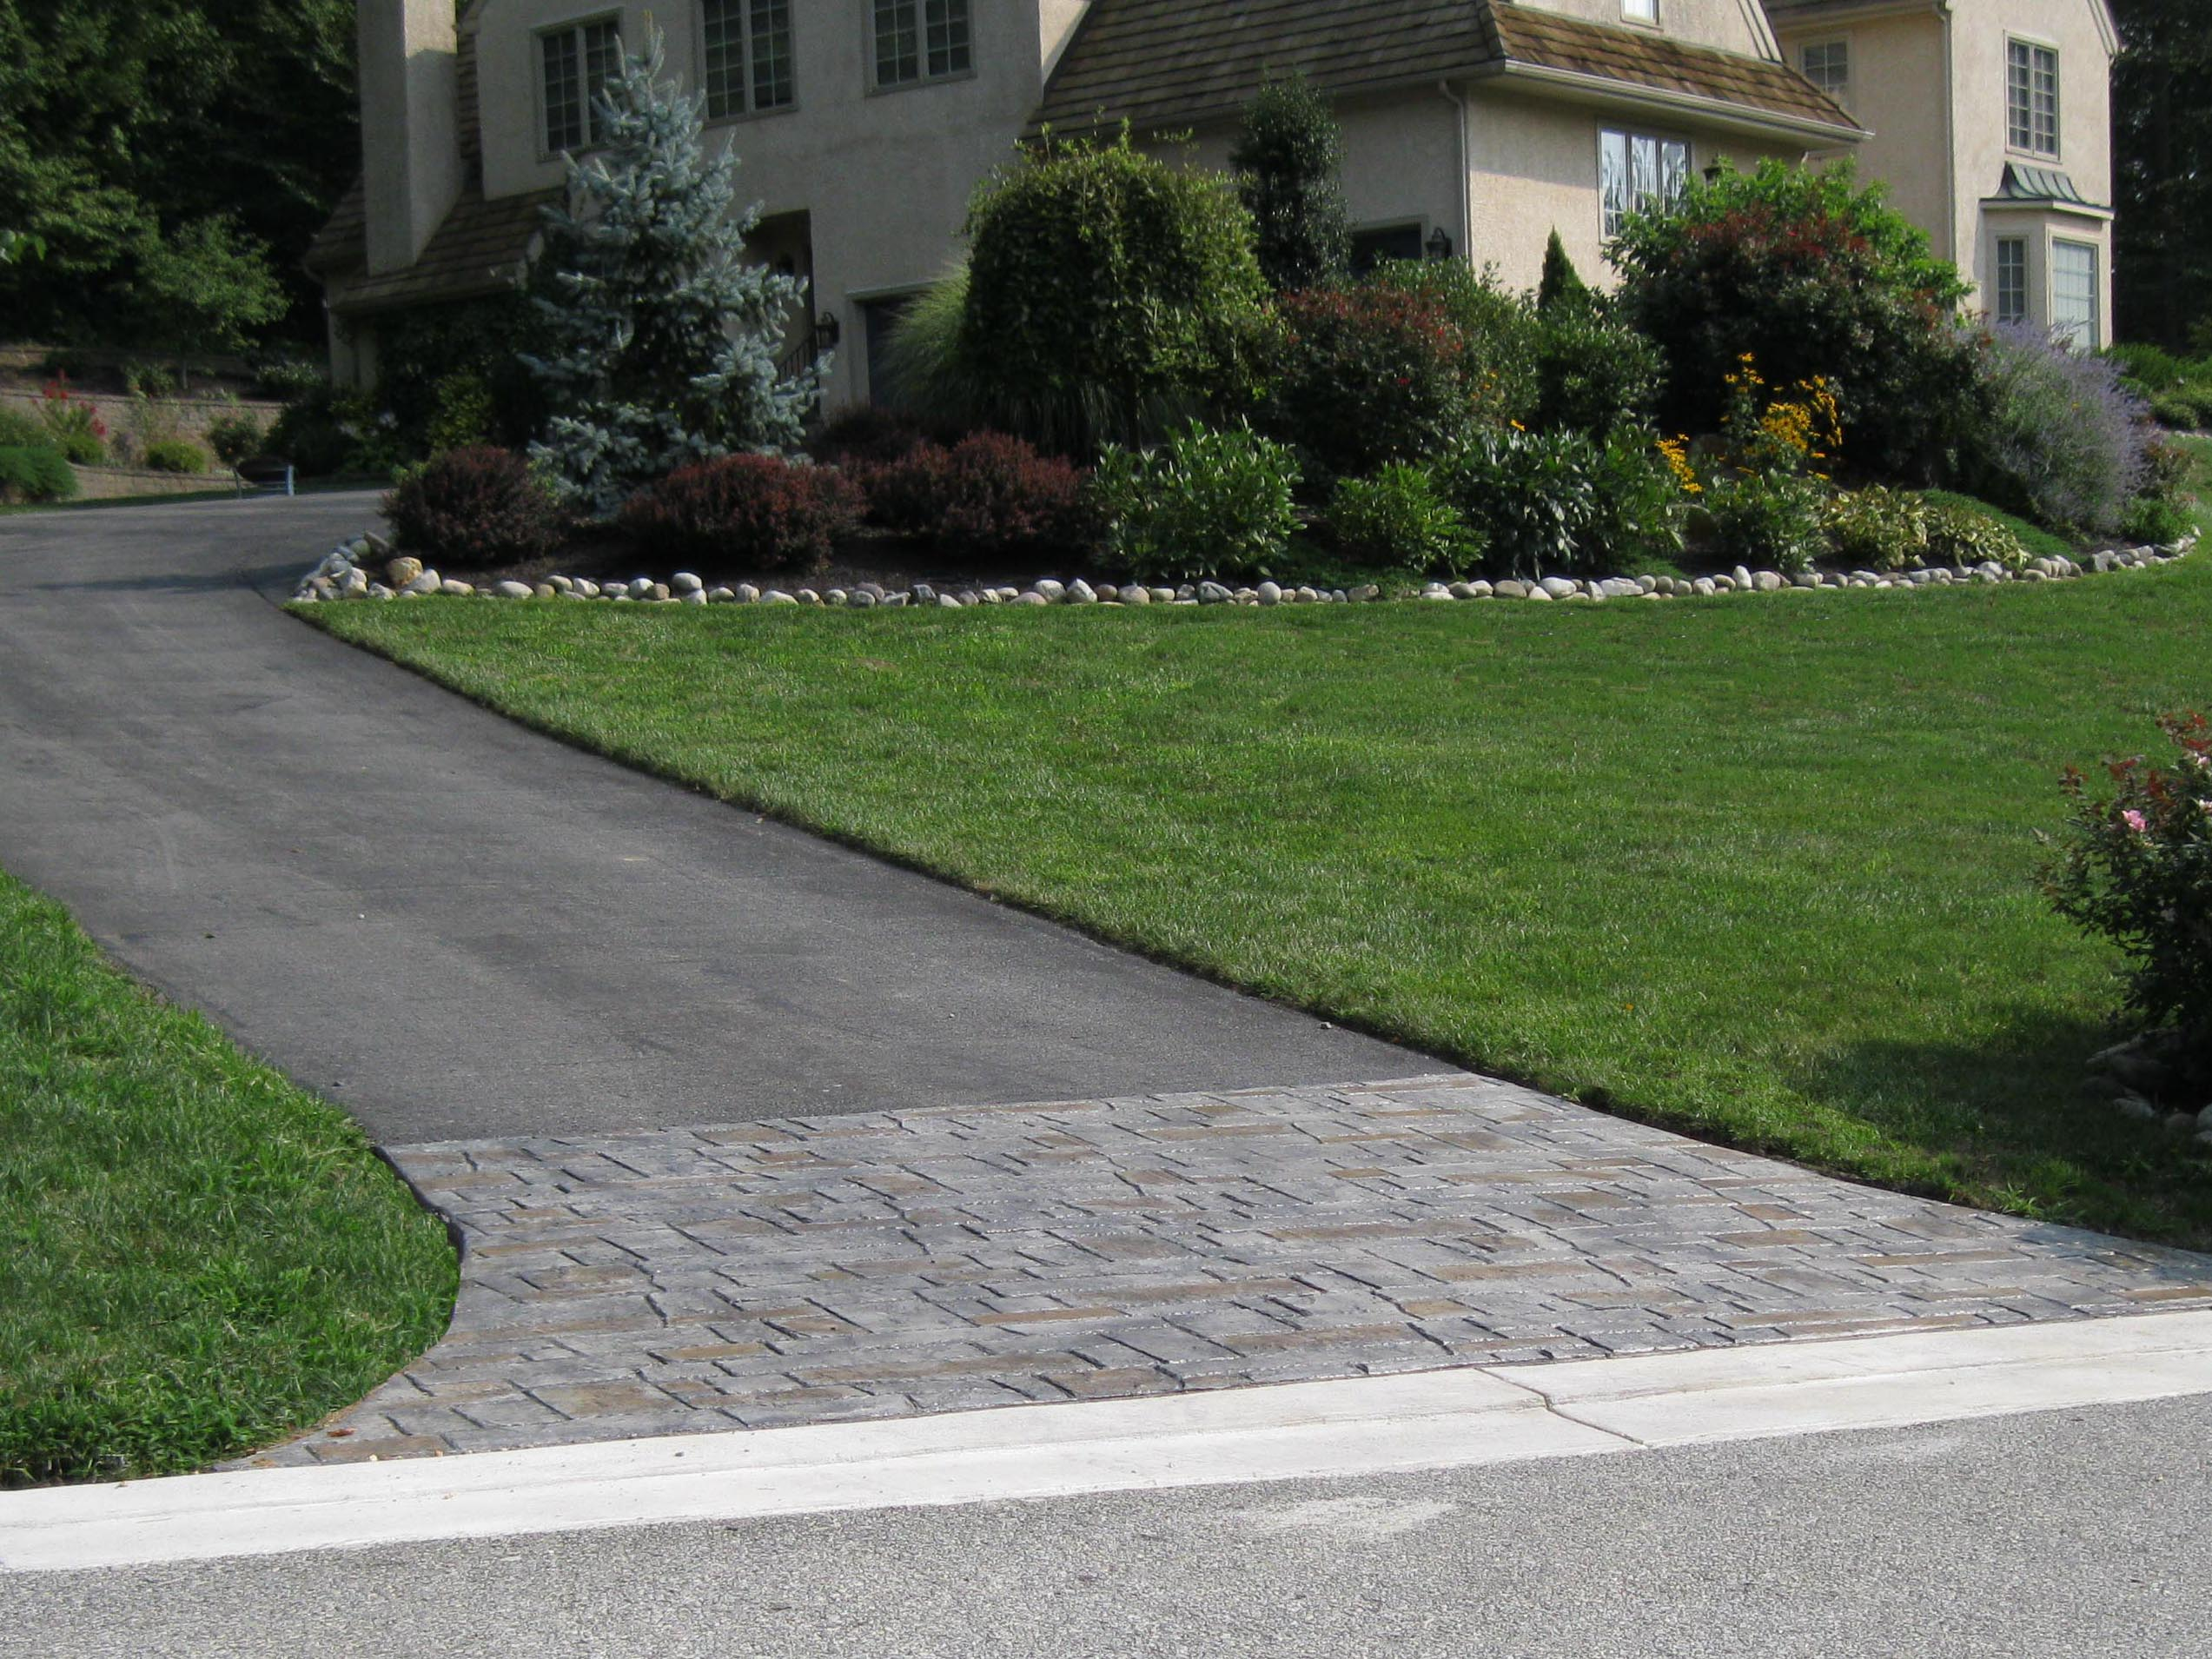 Decorative Stamped Concrete Driveways, Walkways and Patios